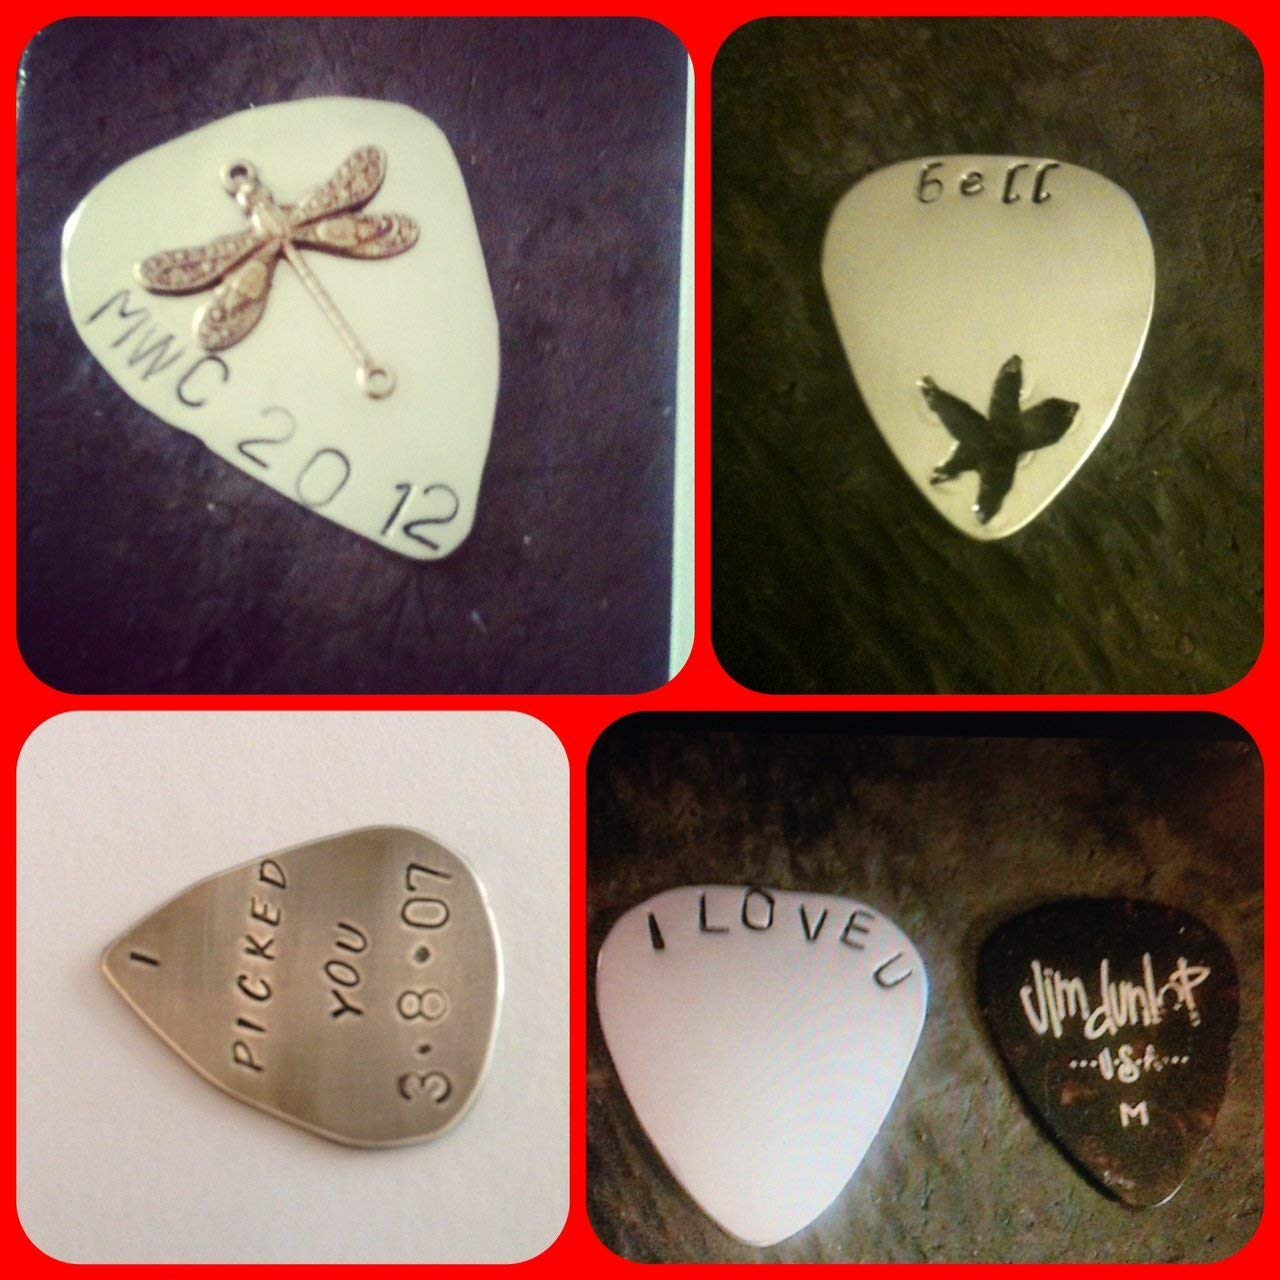 Personalized Guitar Pick,gold ,copper For Him Personalized, Metal Guitar Pick, Engraved For Him, Boyfriend Gift, Hand stamped Guitar Pick - anniversary Guy Gift by Custom jewelry